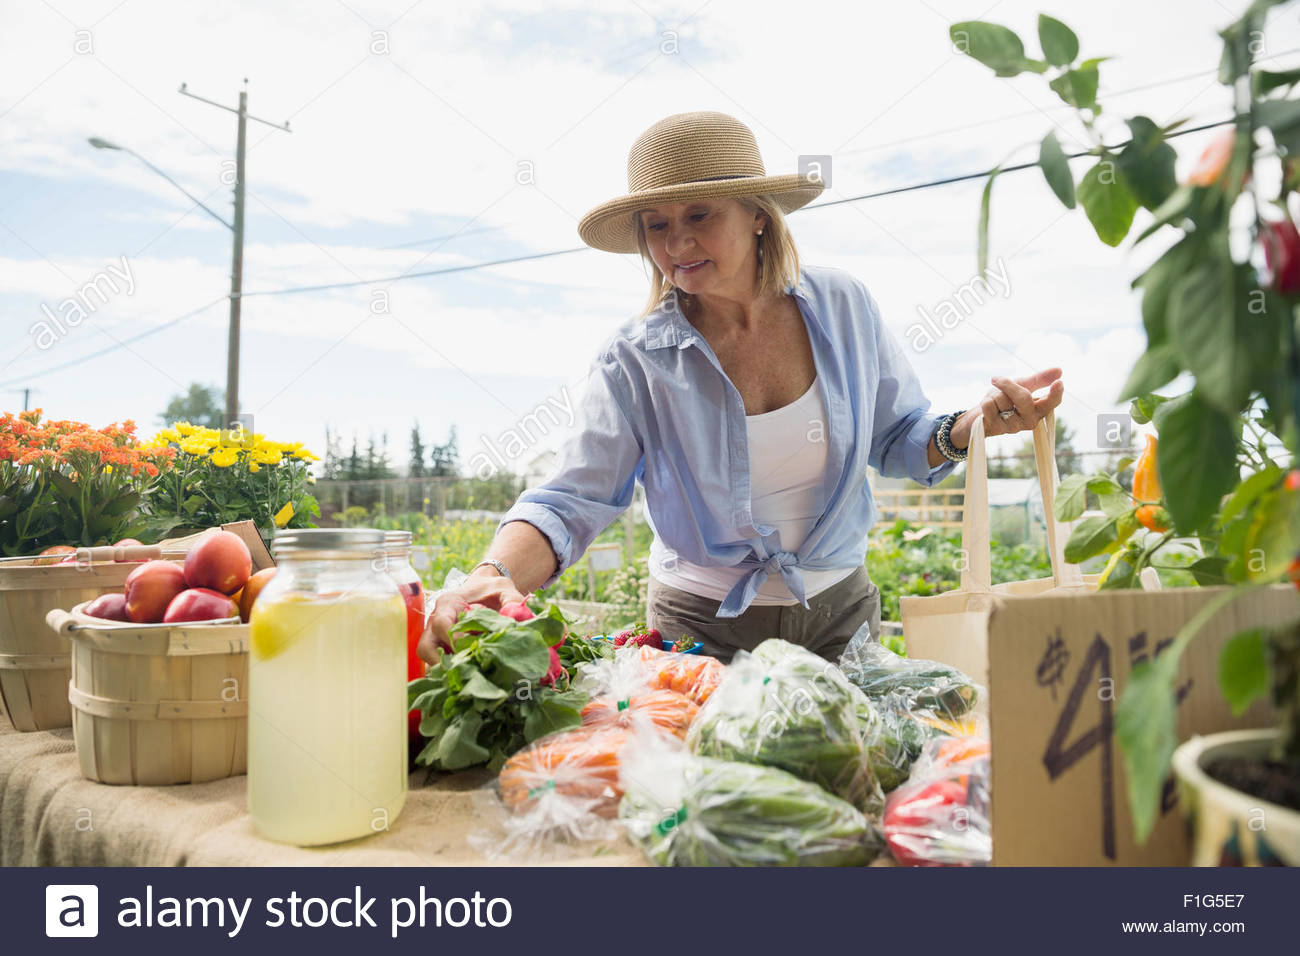 Woman shopping for fresh produce at farmers market - Stock Image